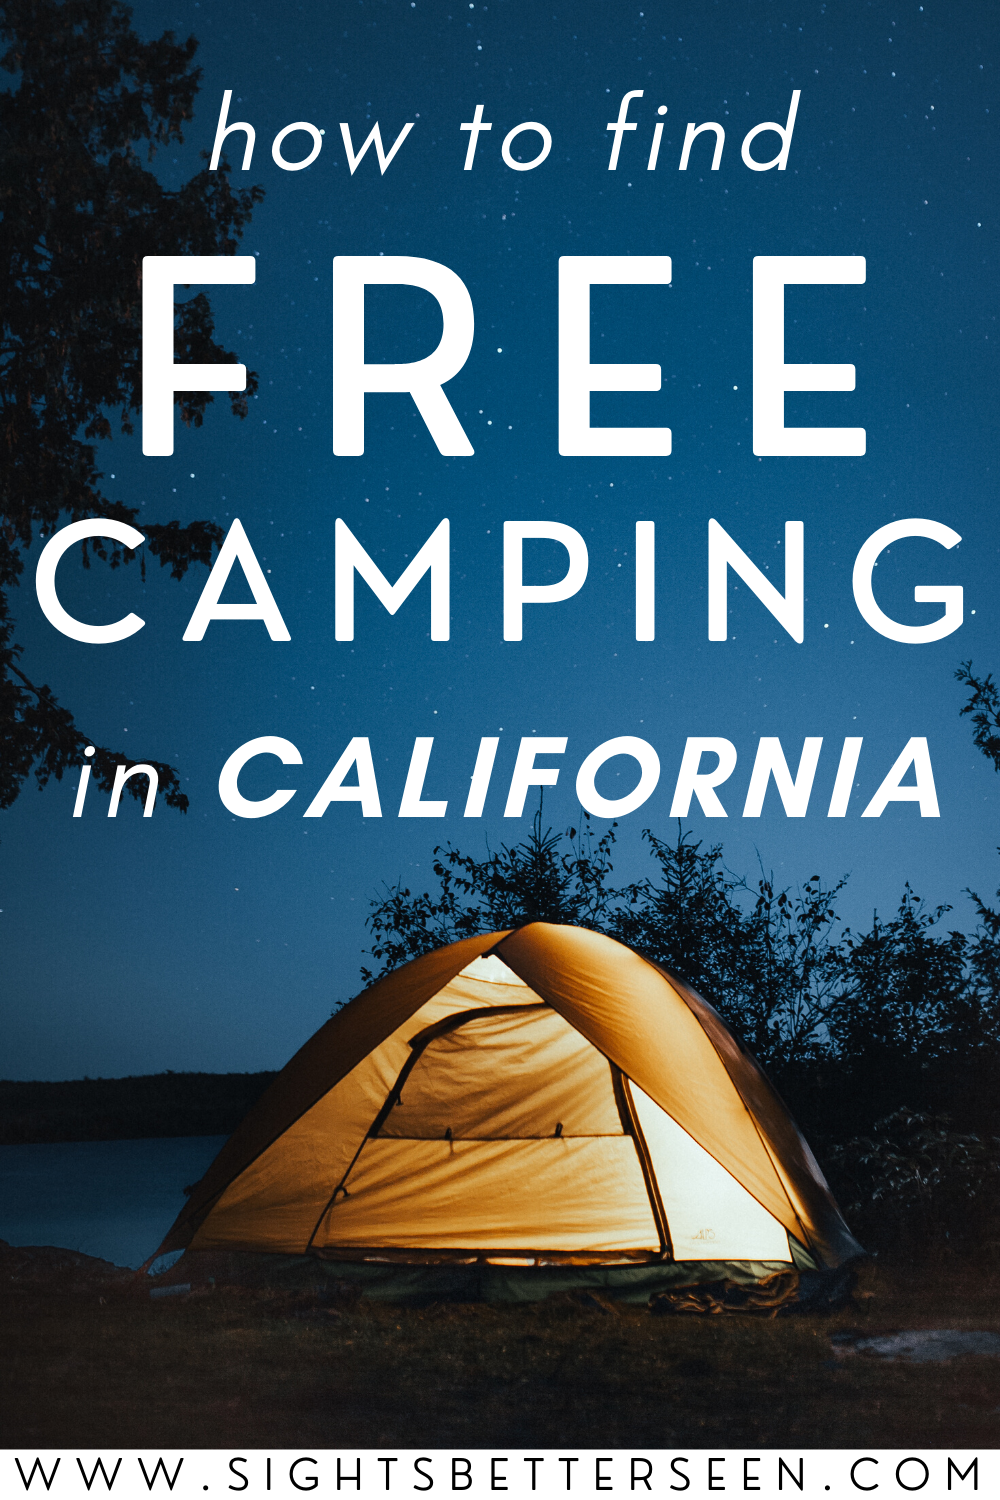 lit up tent against a dark night sky - how to find free camping in California!